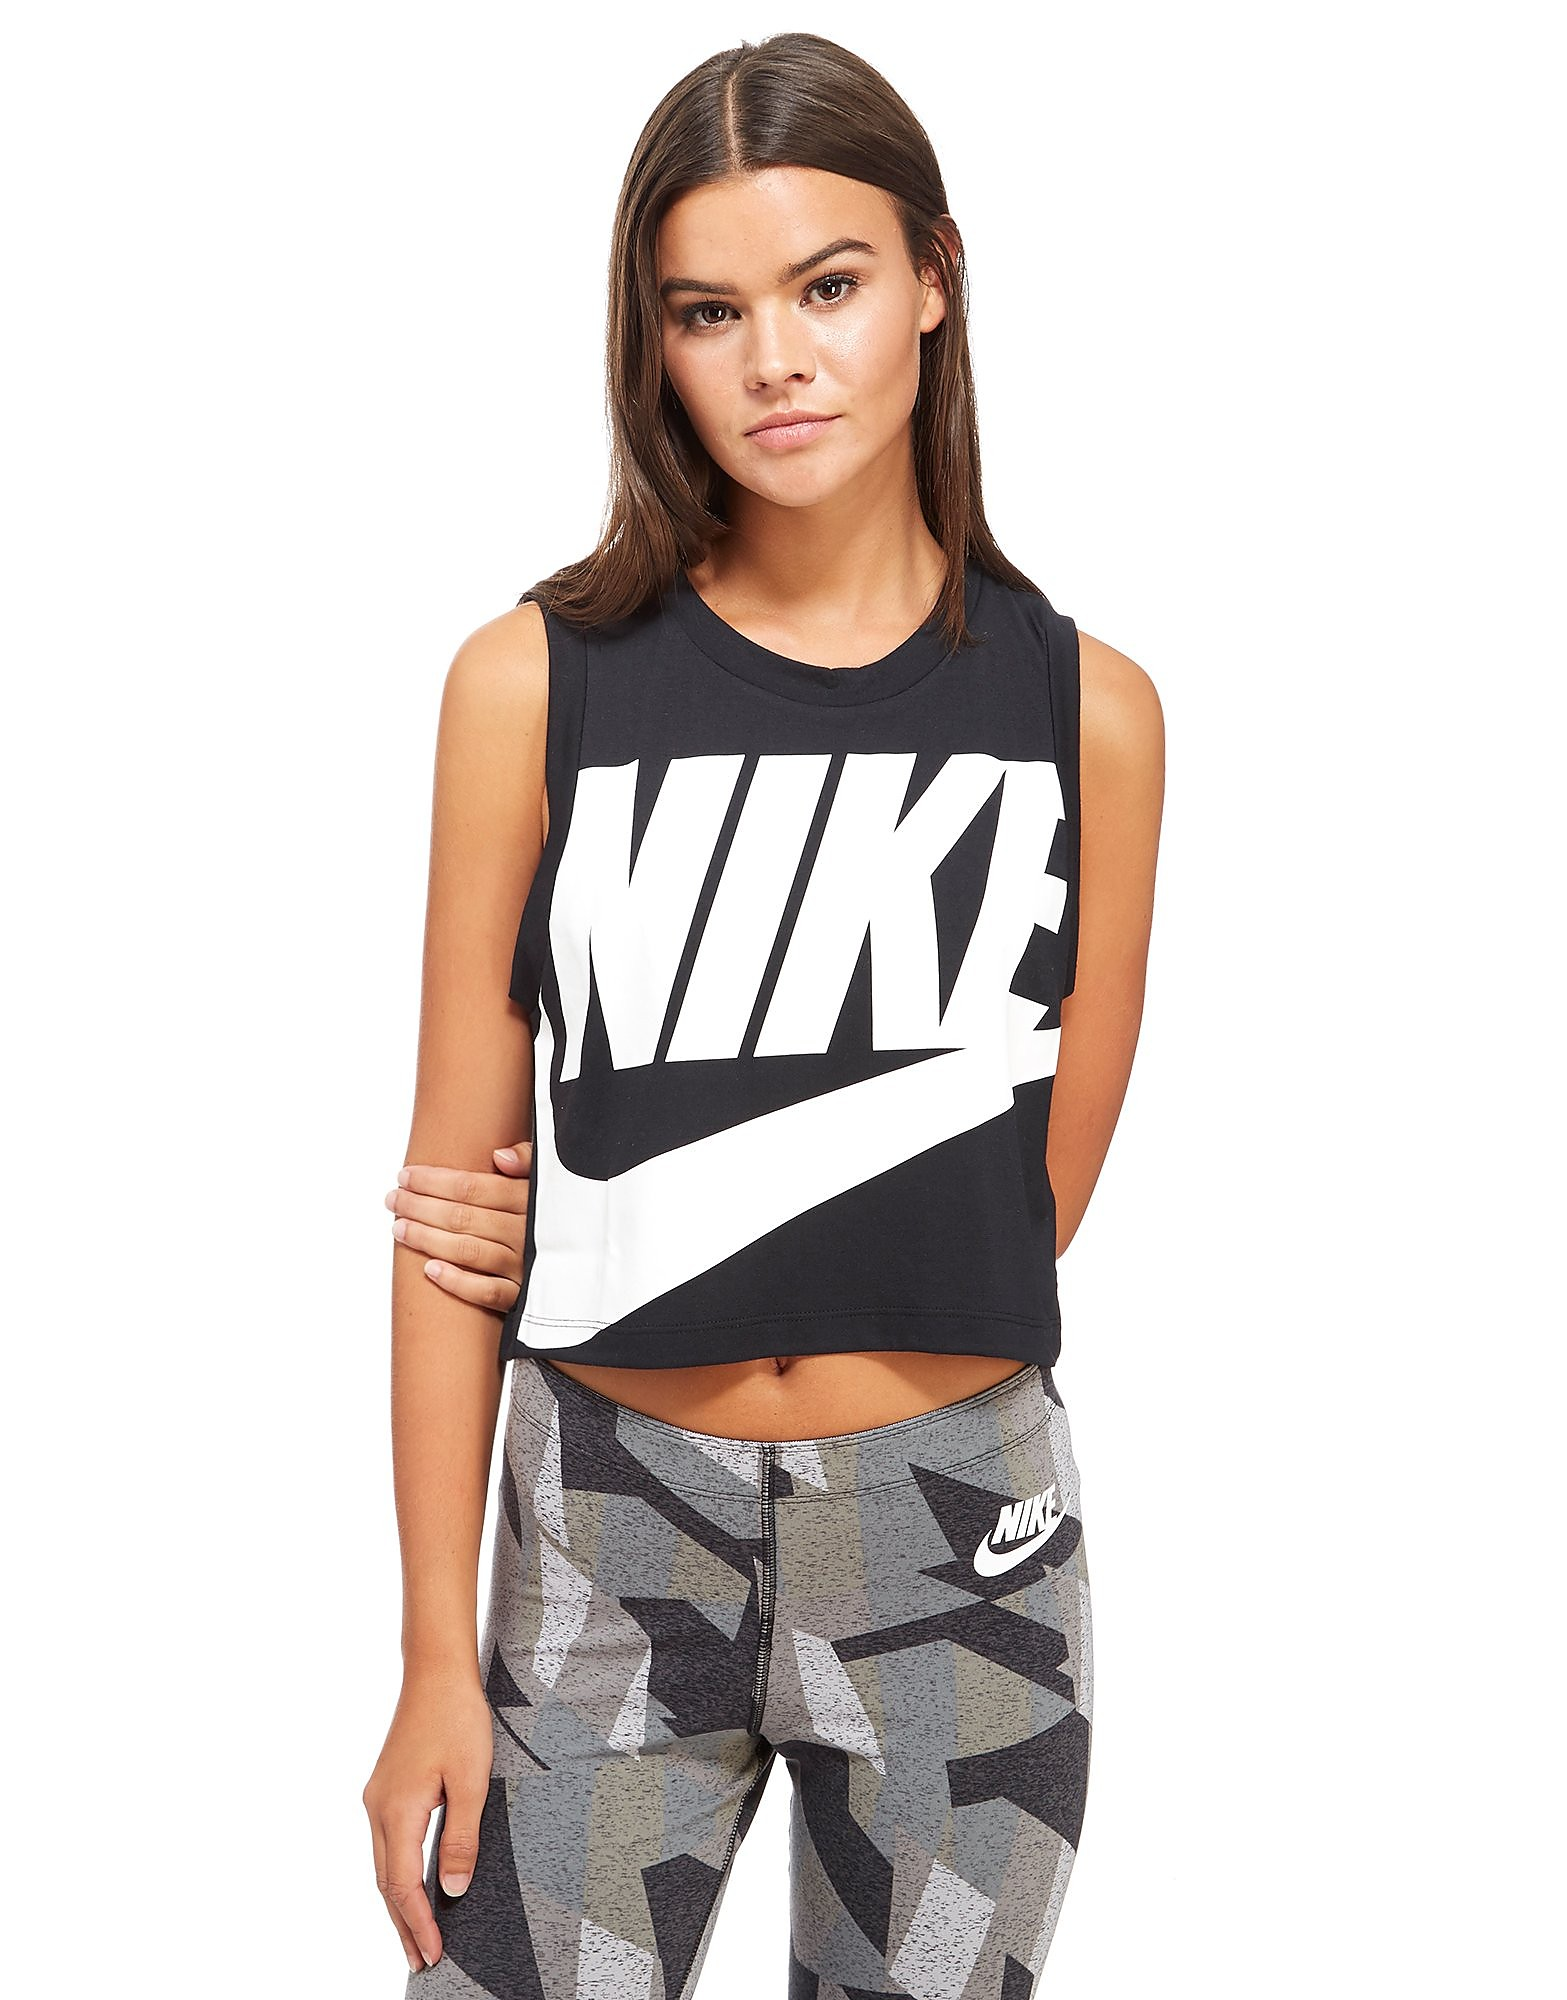 Nike Crop Sleeveless Tank